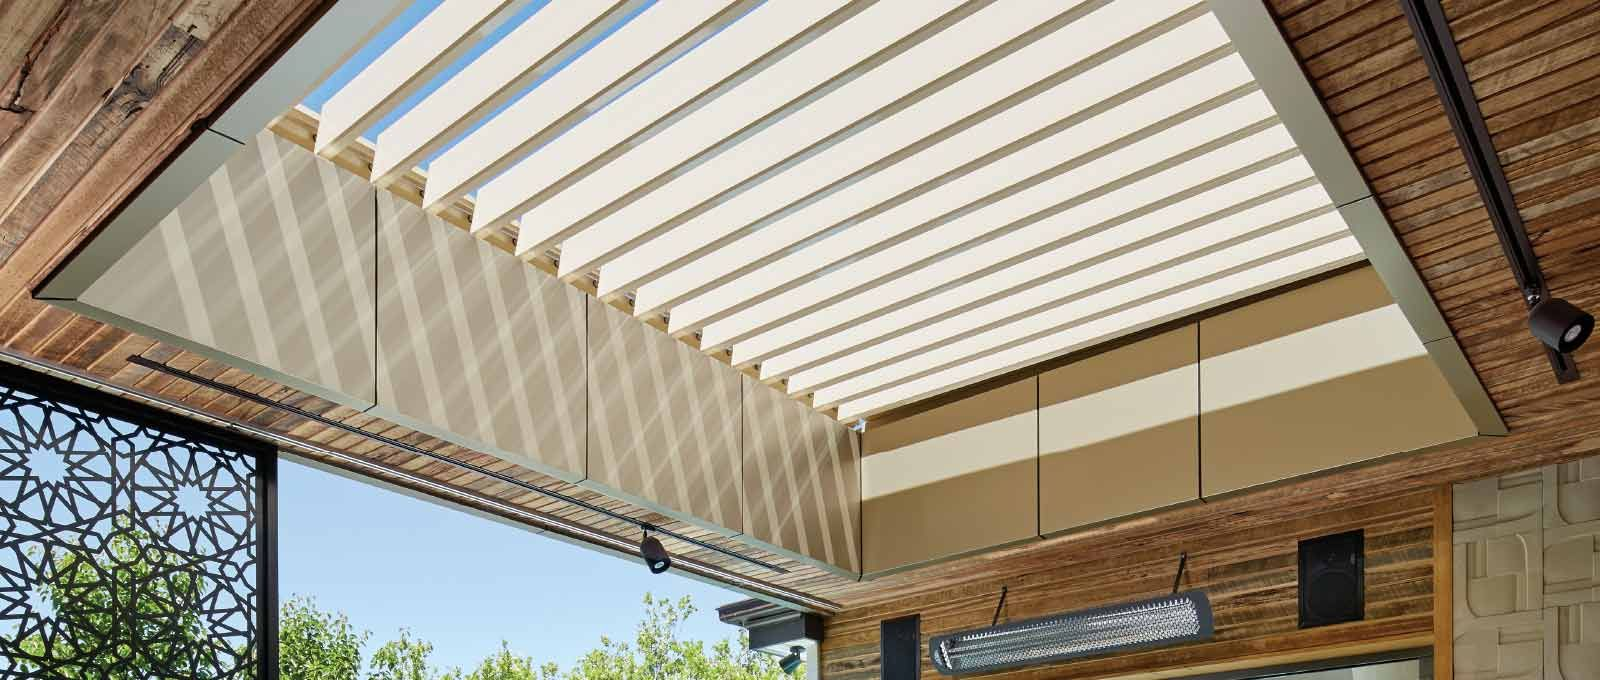 Outback Sunroof Opening Louvre Roof Pergola House Ideas